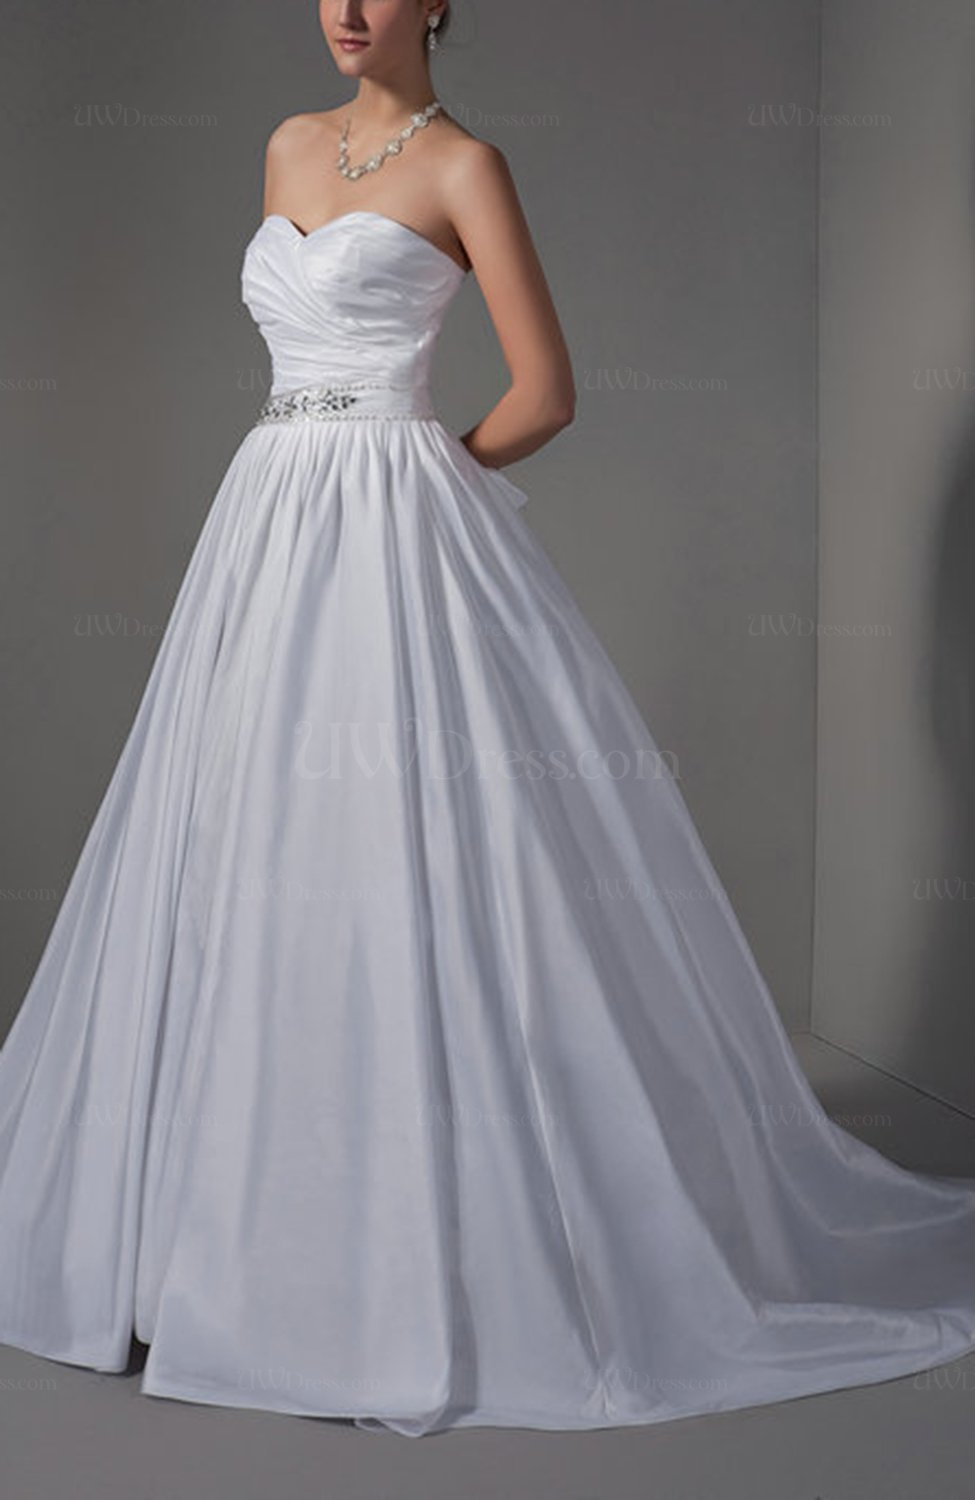 Cinderella Wedding And Evening Gowns : Cinderella outdoor princess backless court train beaded bridal gowns